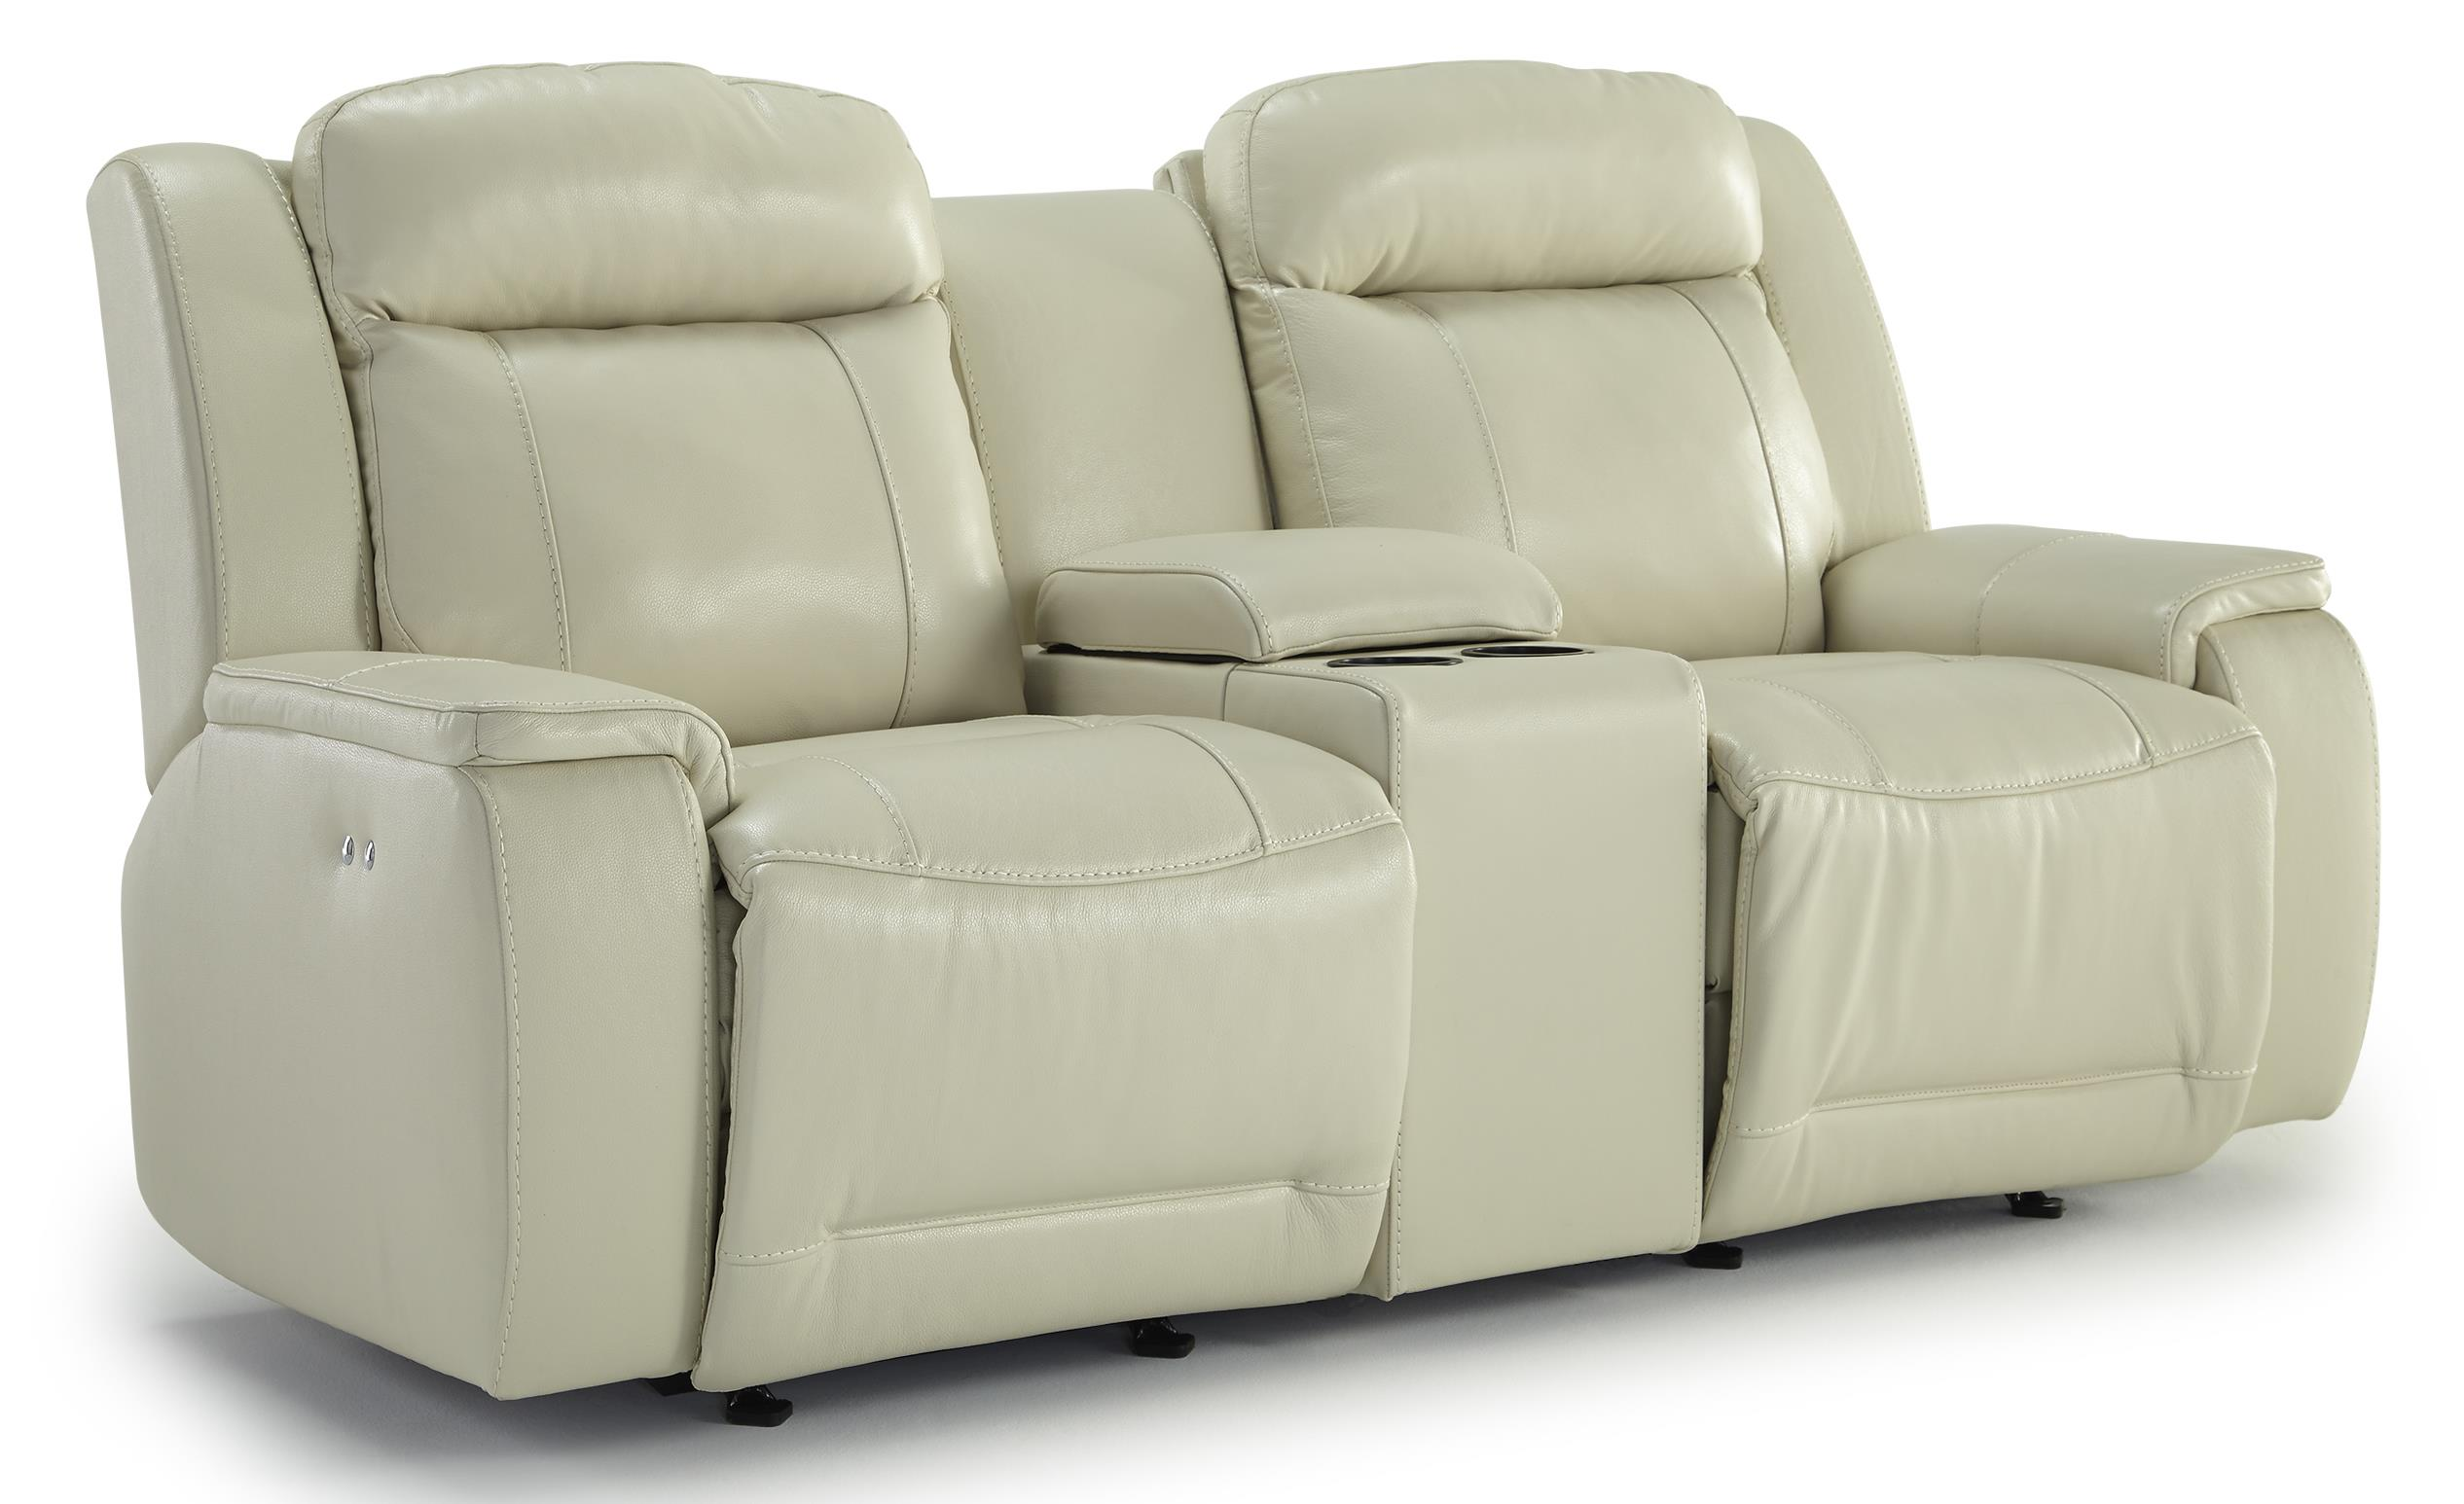 Best Home Furnishings Hardisty Power Rocking Reclining Loveseat w/ Console - Item Number: L680CQ7-76507LV